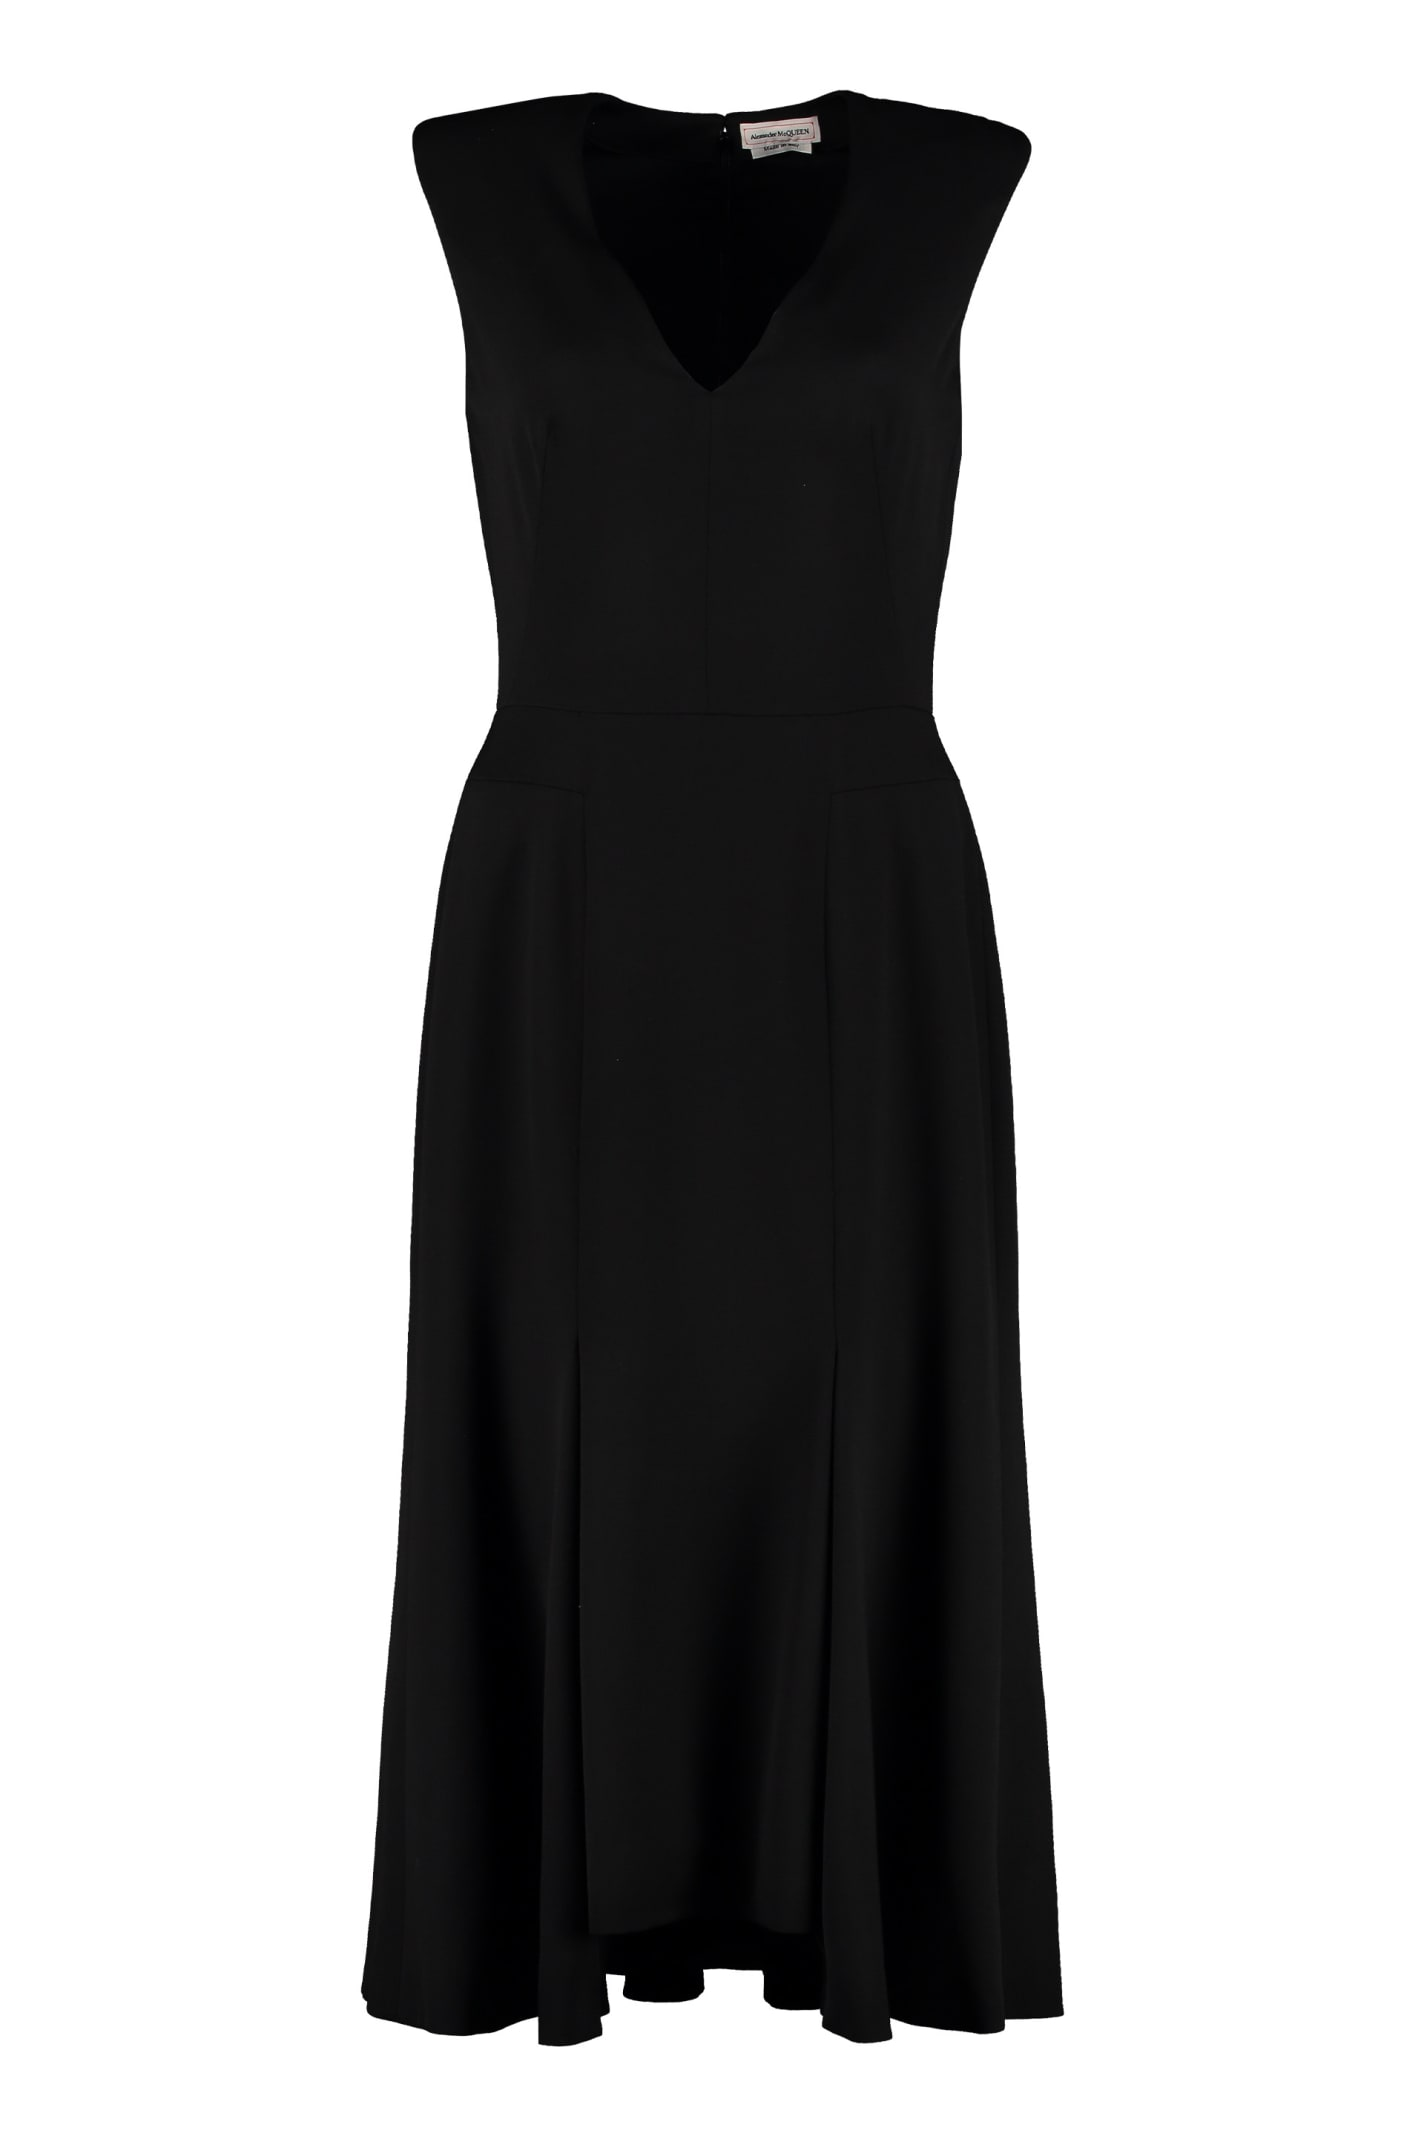 Photo of  Alexander McQueen Virgin Wool Midi Dress- shop Alexander McQueen  online sales